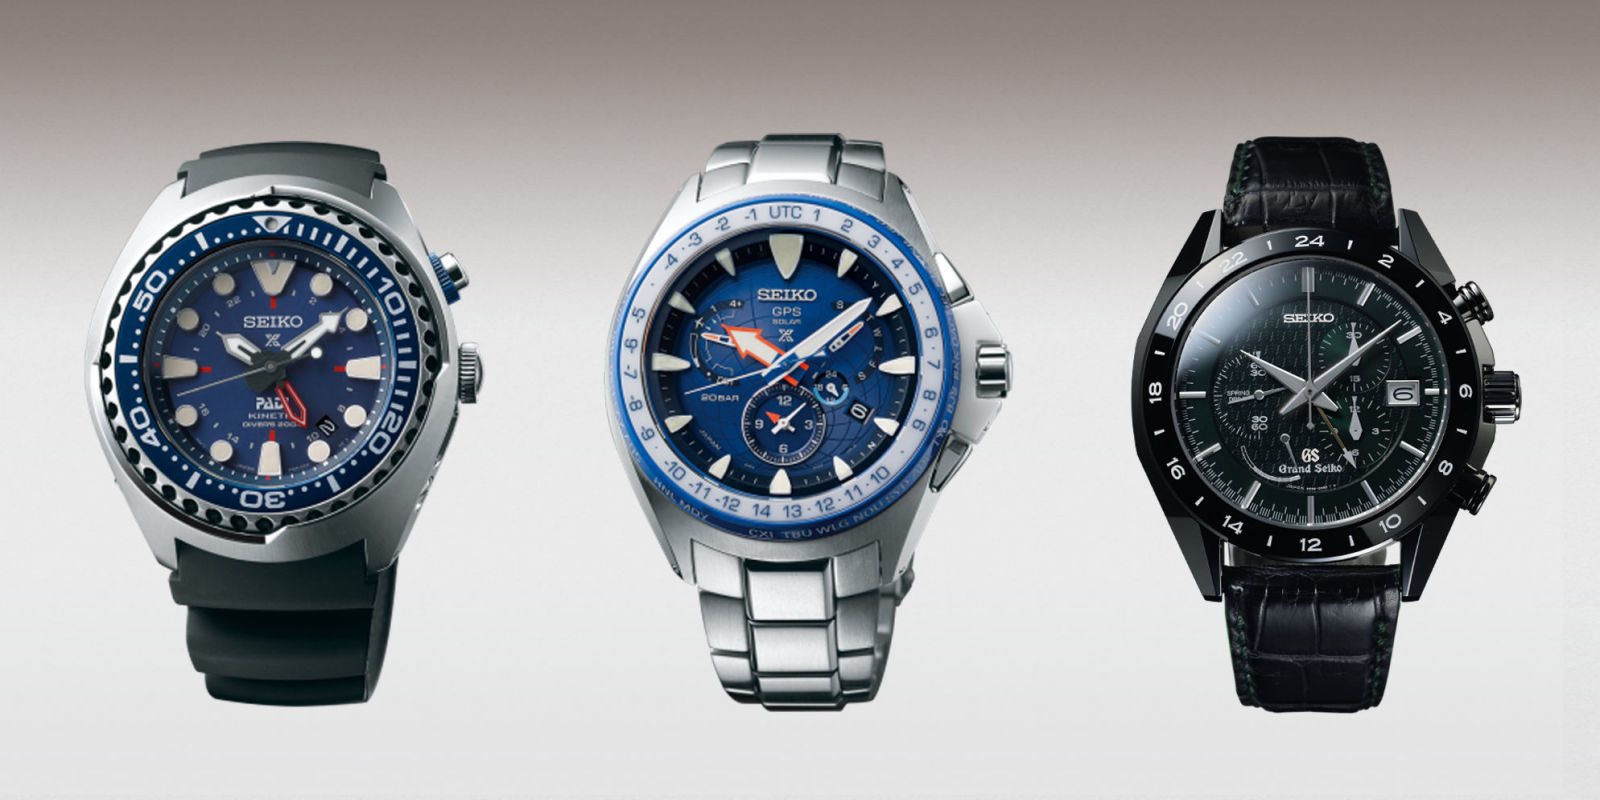 6 Best Seiko Watches As Seen At Baselworld 2017 Seiko